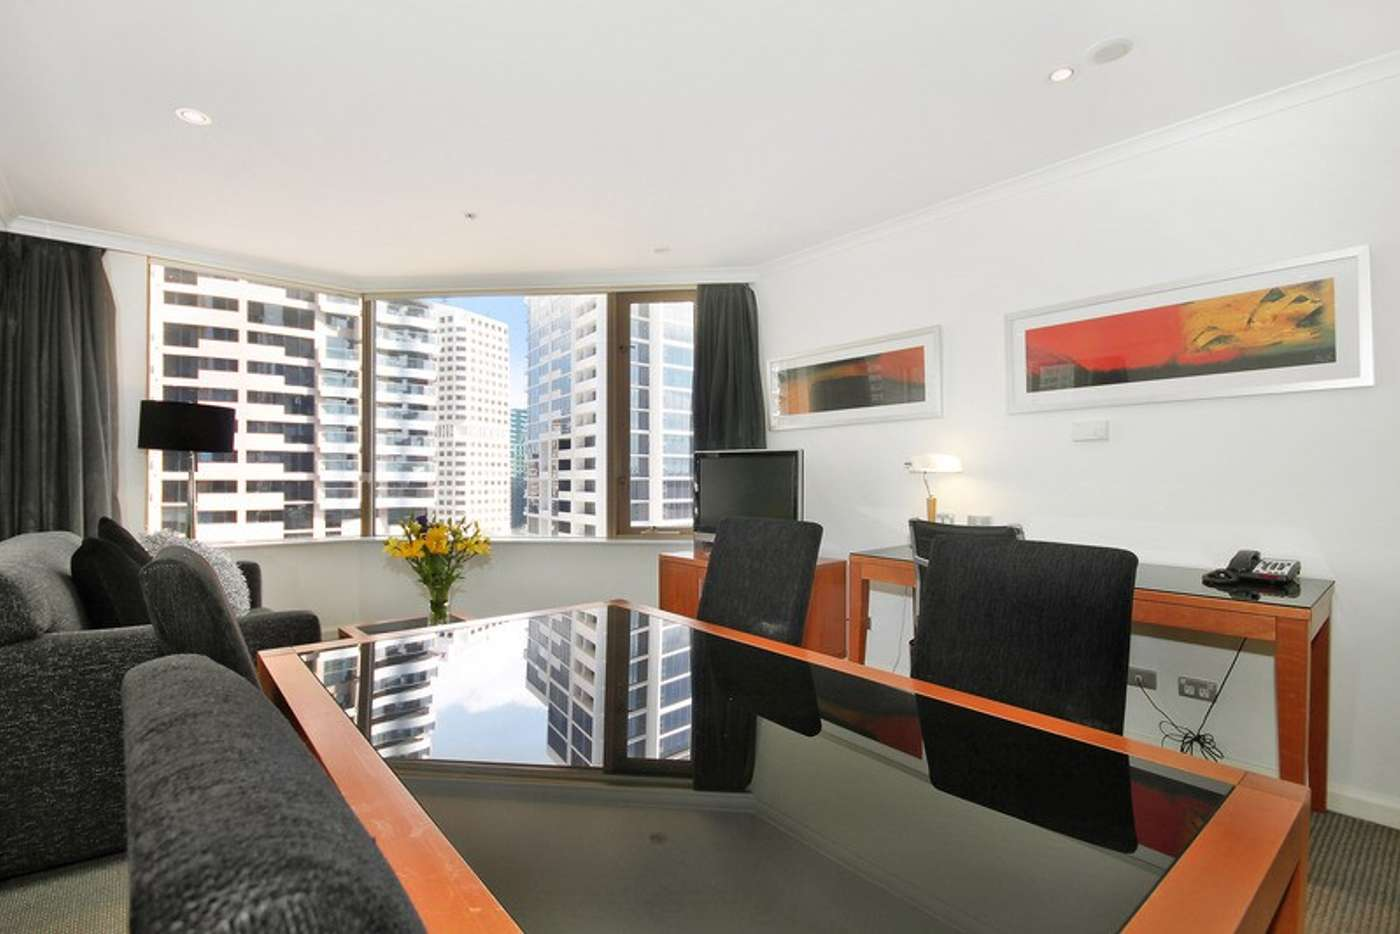 Main view of Homely apartment listing, 98 Gloucester St, Sydney NSW 2000